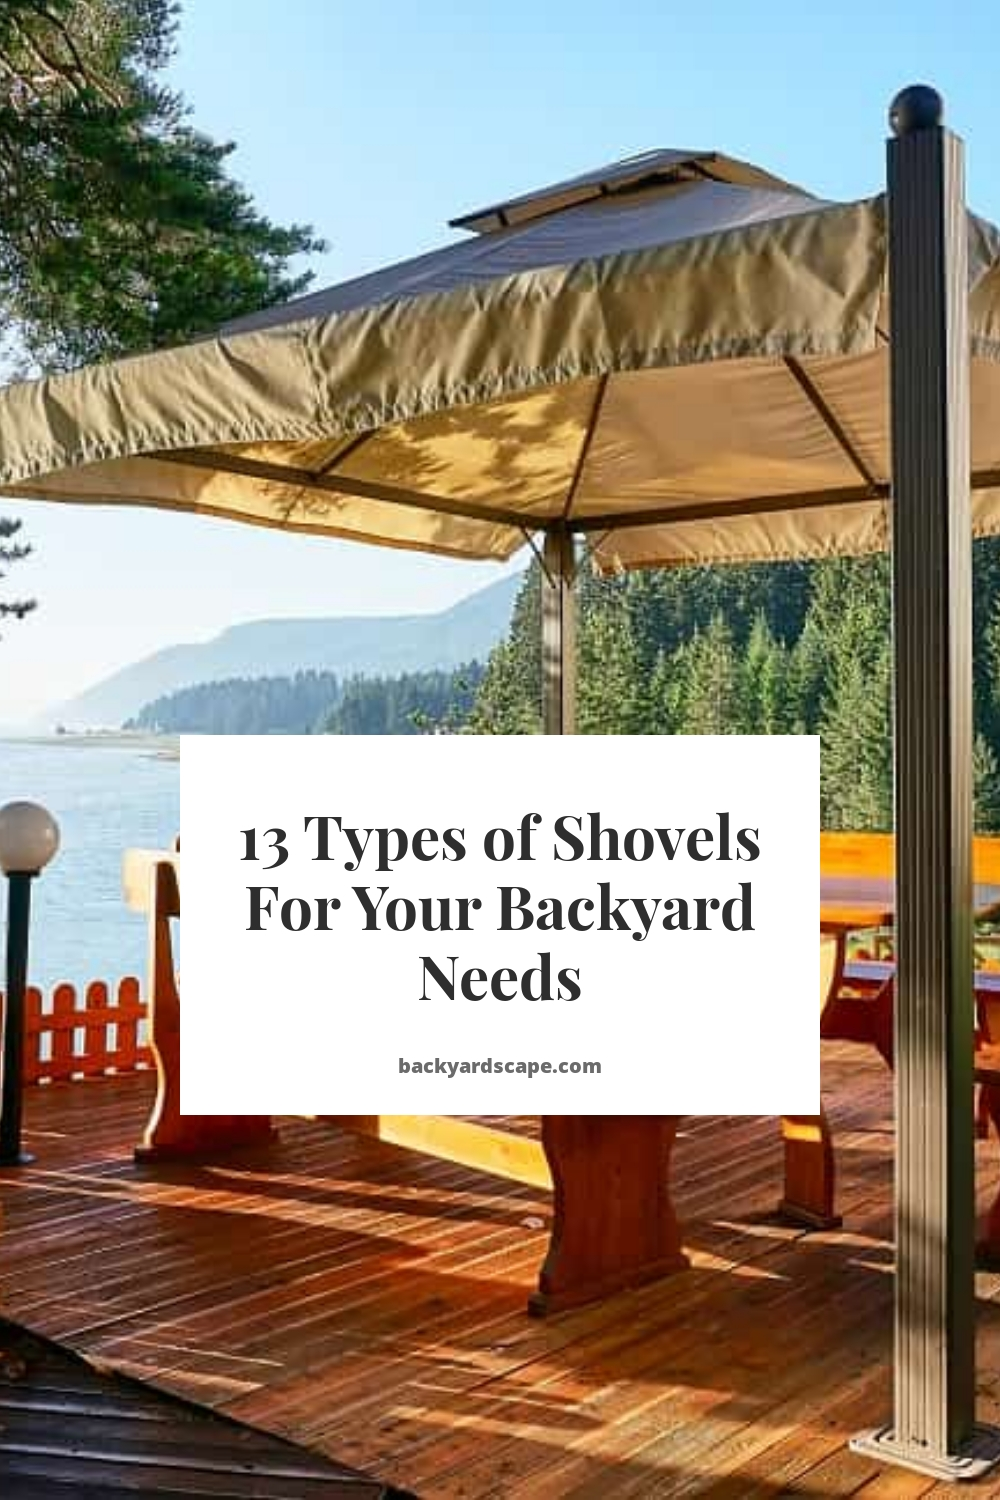 13 Types of Shovels For Your Backyard Needs